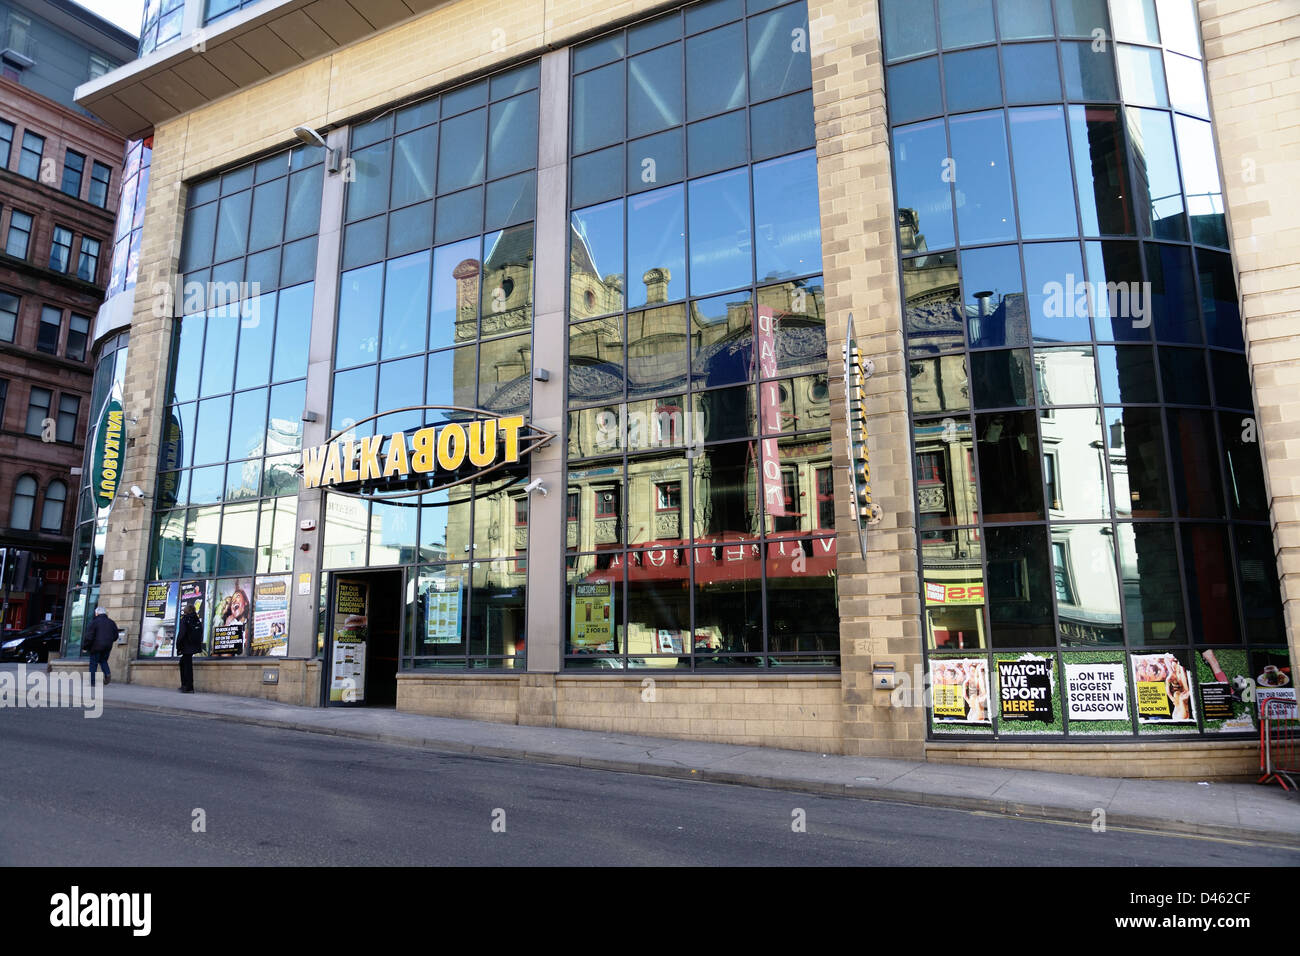 Walkabout Bar on Renfield Street in Glasgow city centre, Scotland, UK Stock Photo